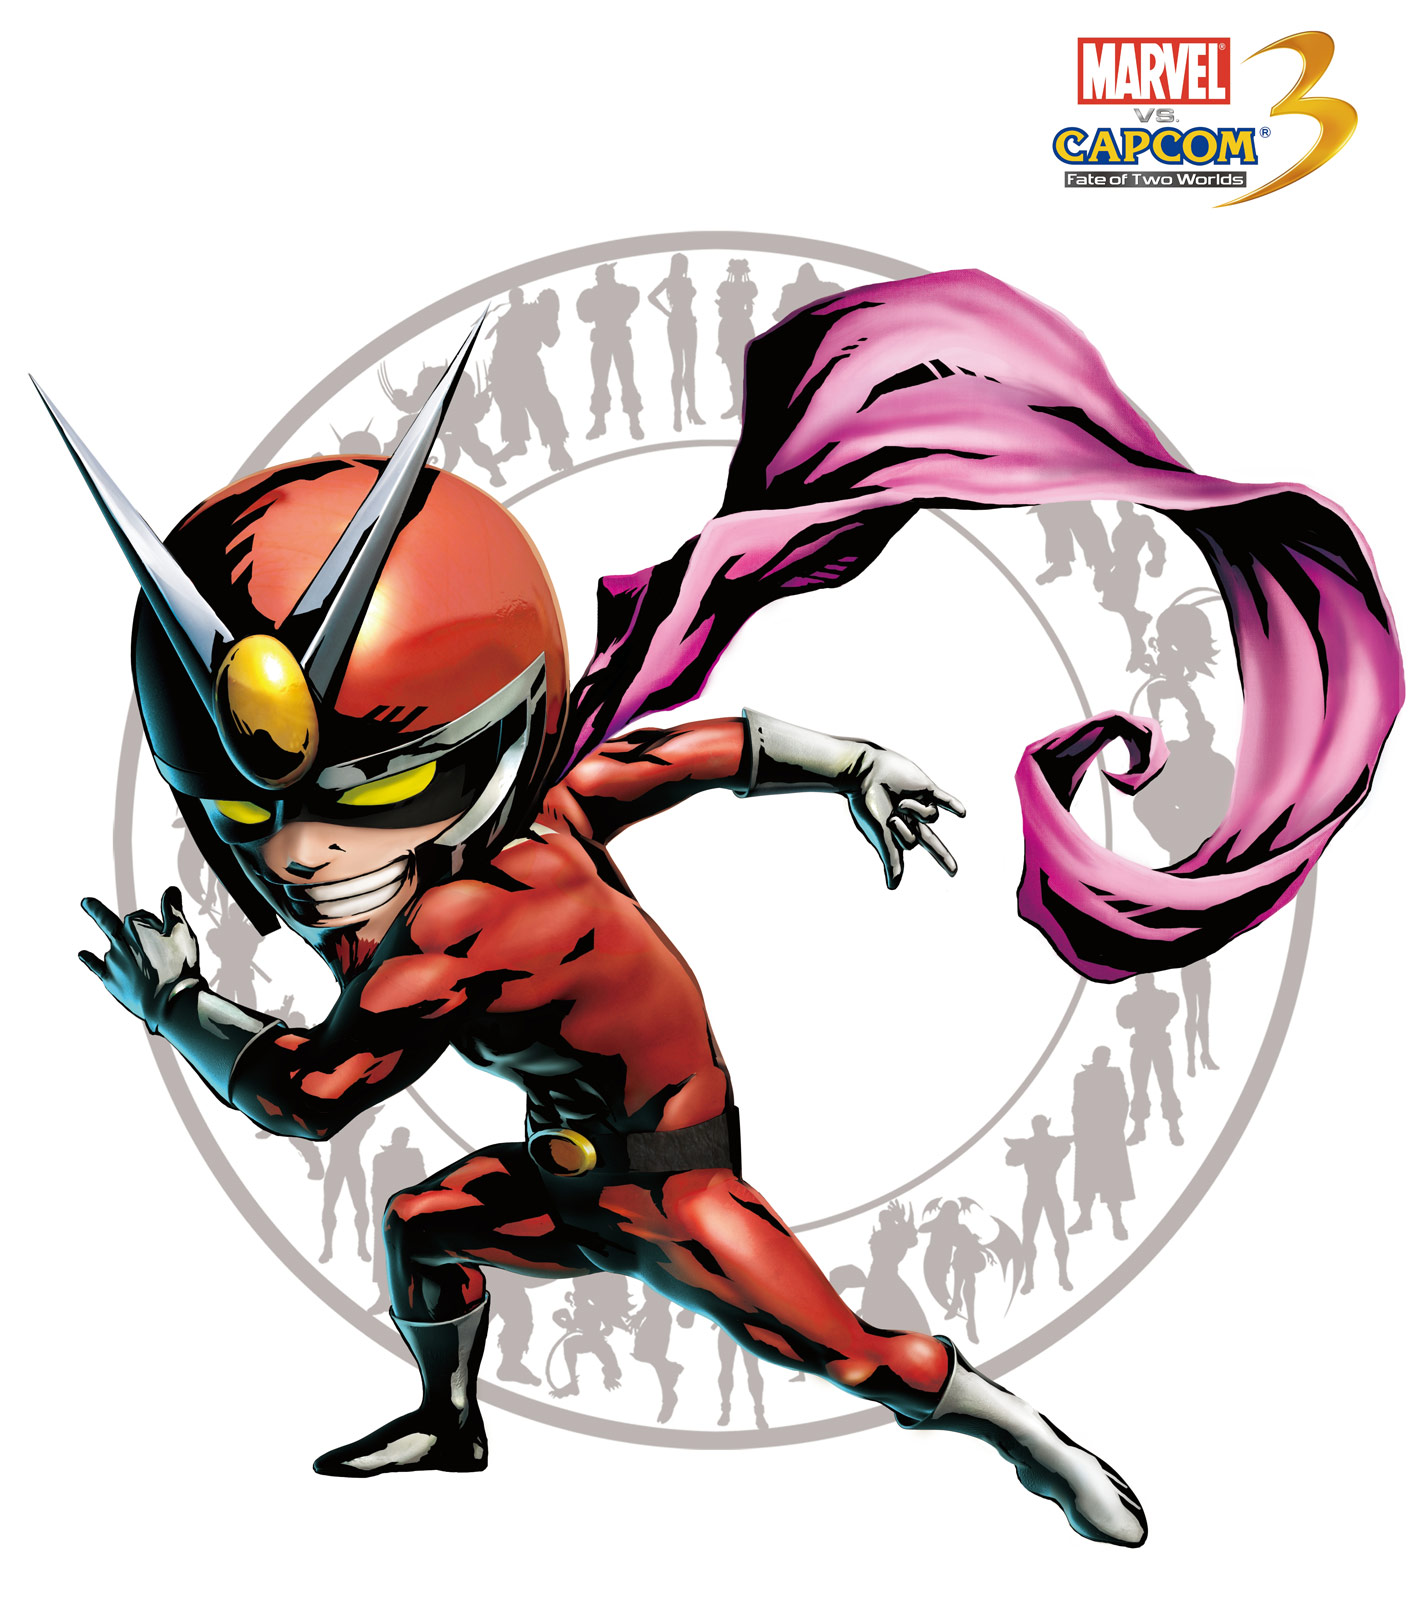 Viewtiful Joe artwork for Marvel vs. Capcom 3